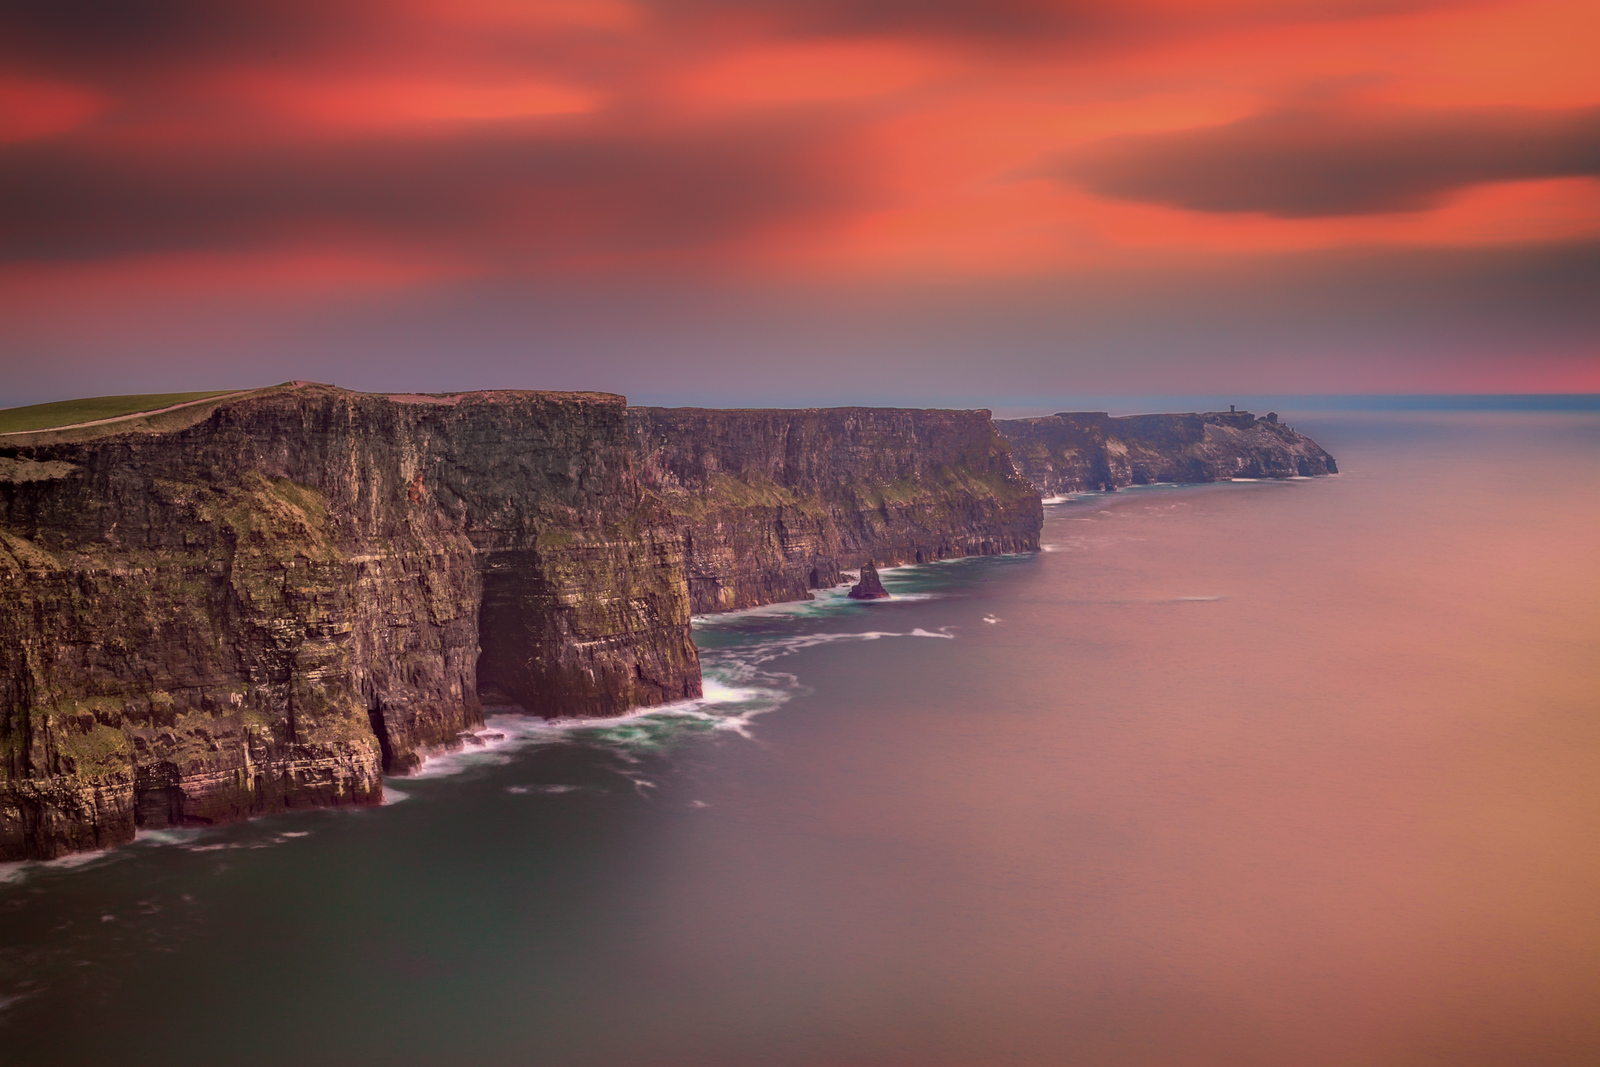 The Cliffs of Moher in Irealand on the Wild Atlantic Way